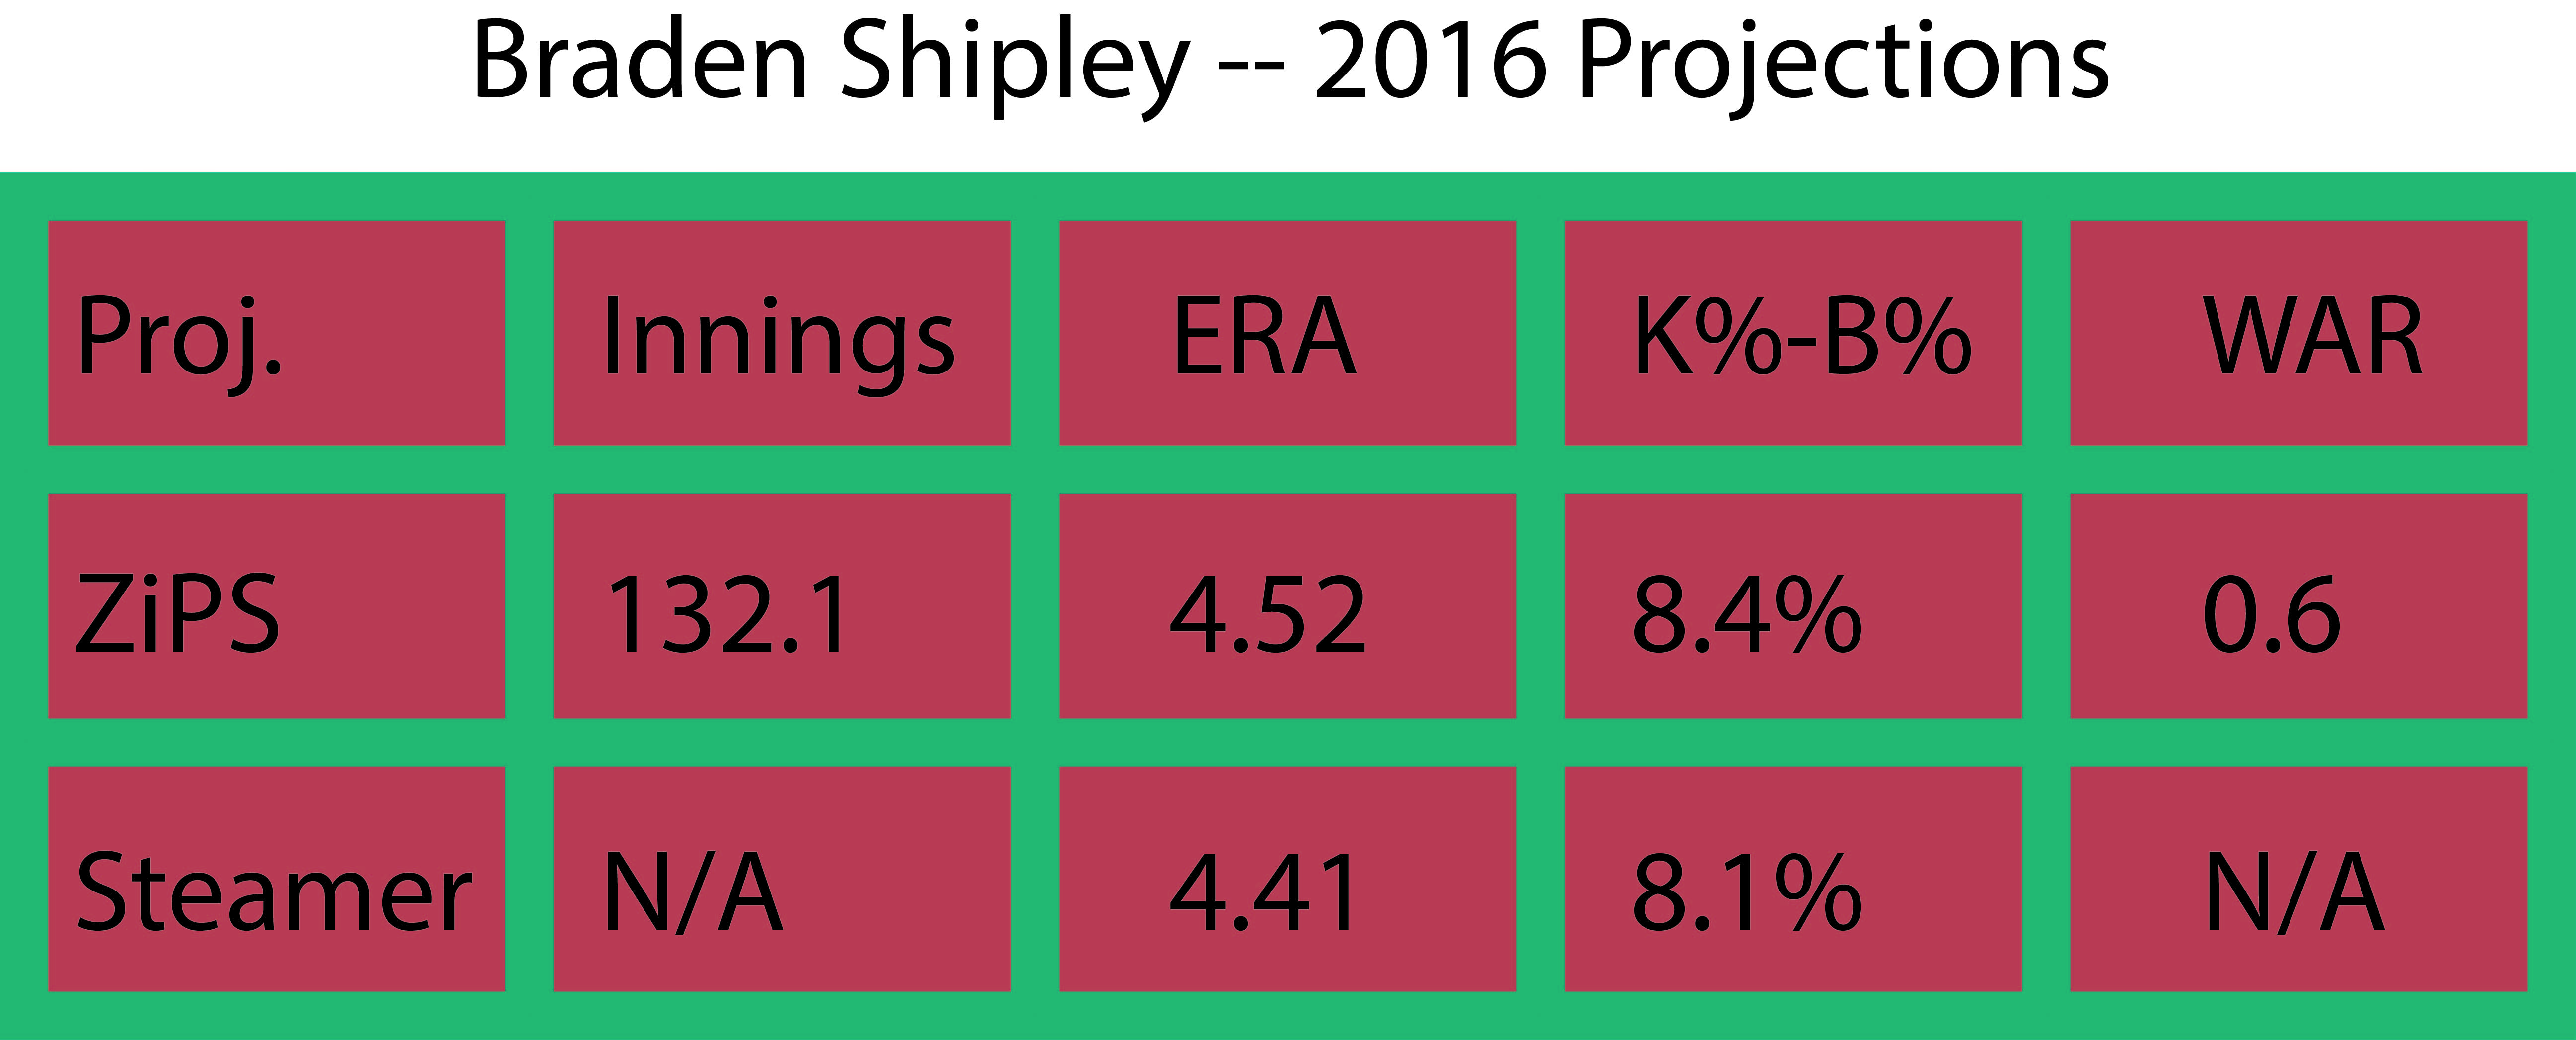 Shipley projections